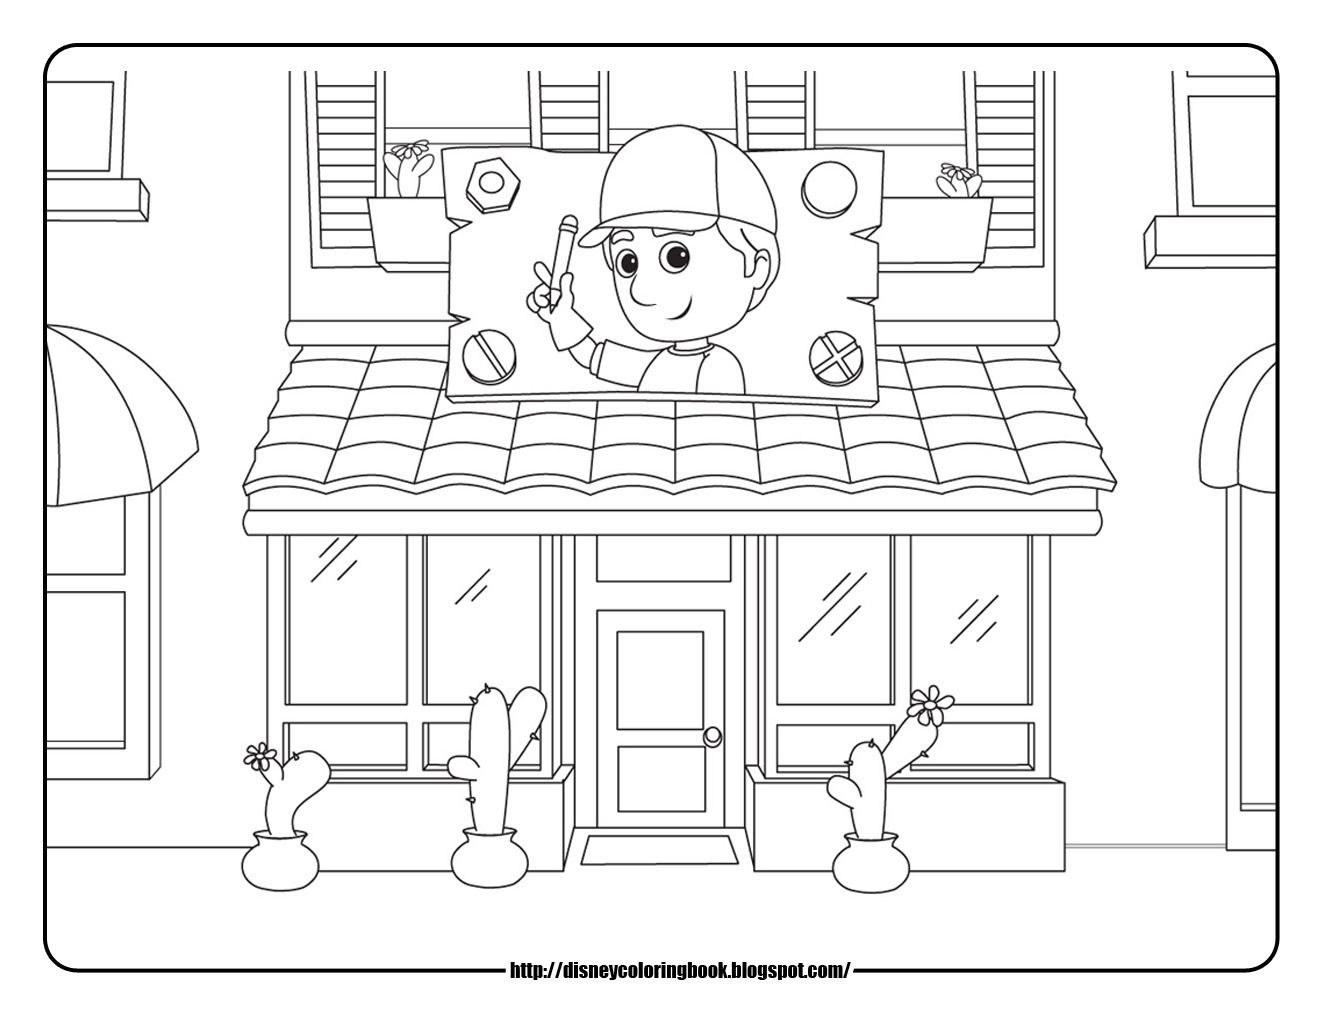 Handy Manny Coloring Pages Handy Manny 2 Free Disney Coloring Sheets  Learn To Coloring